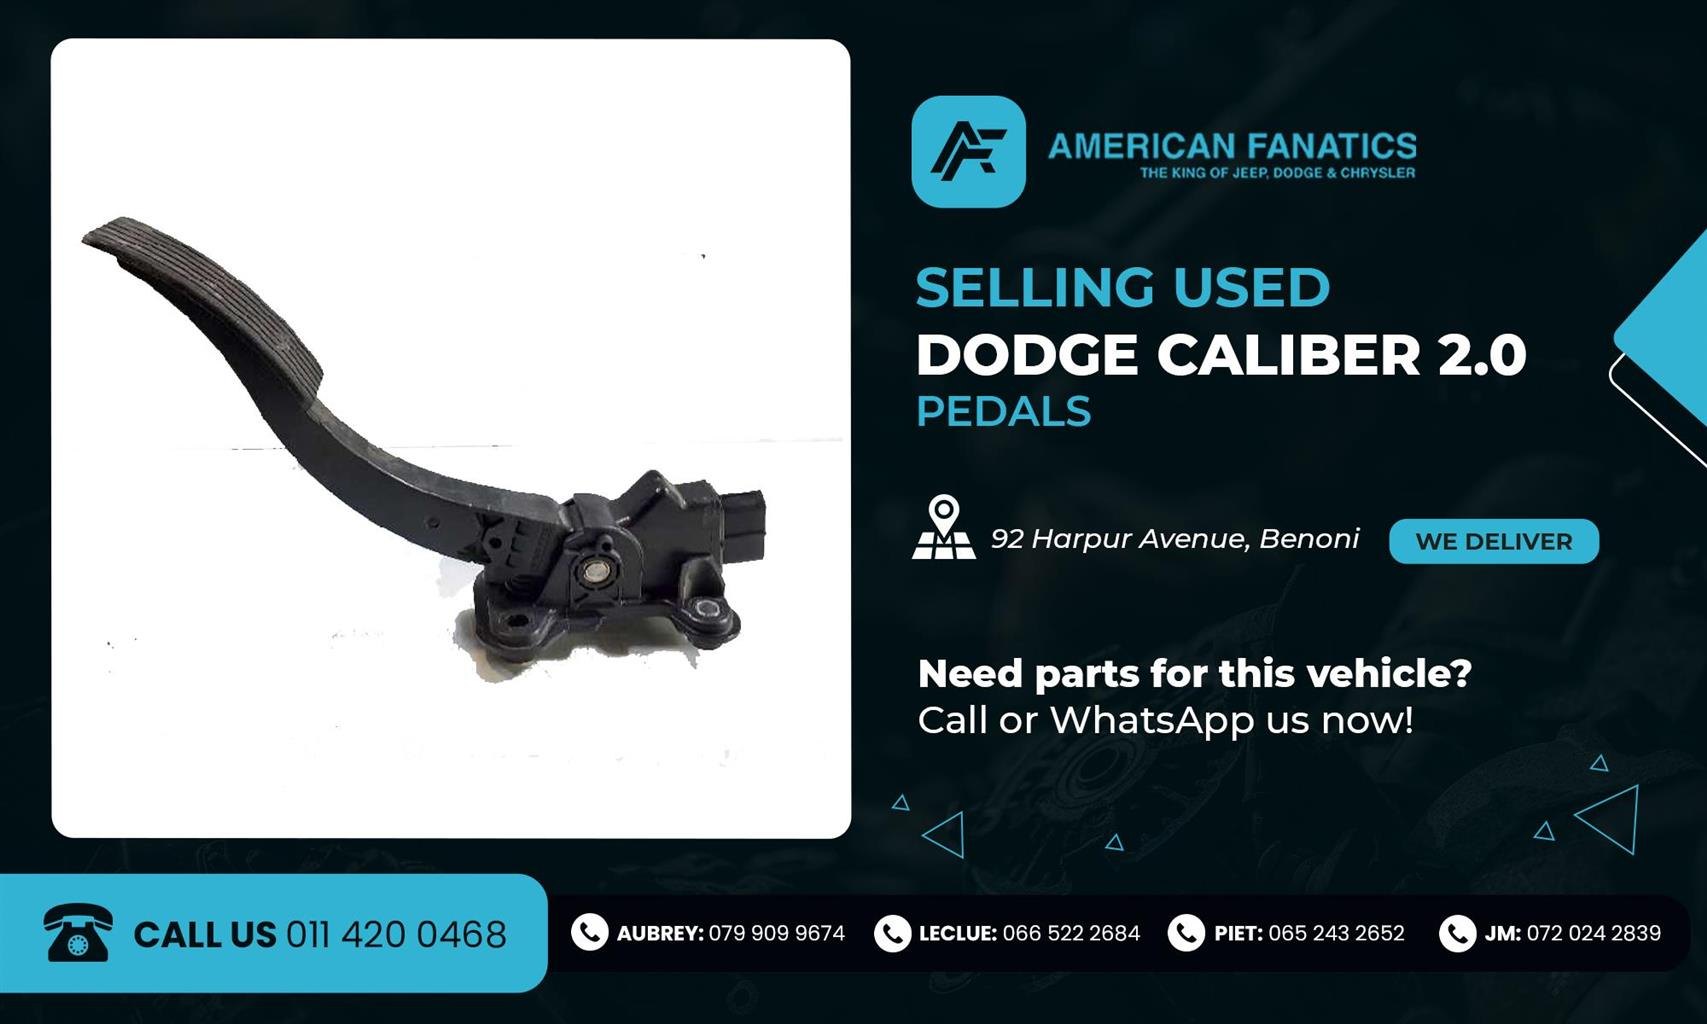 DODGE CALIBER 2.0 USED PEDALS FOR SALE